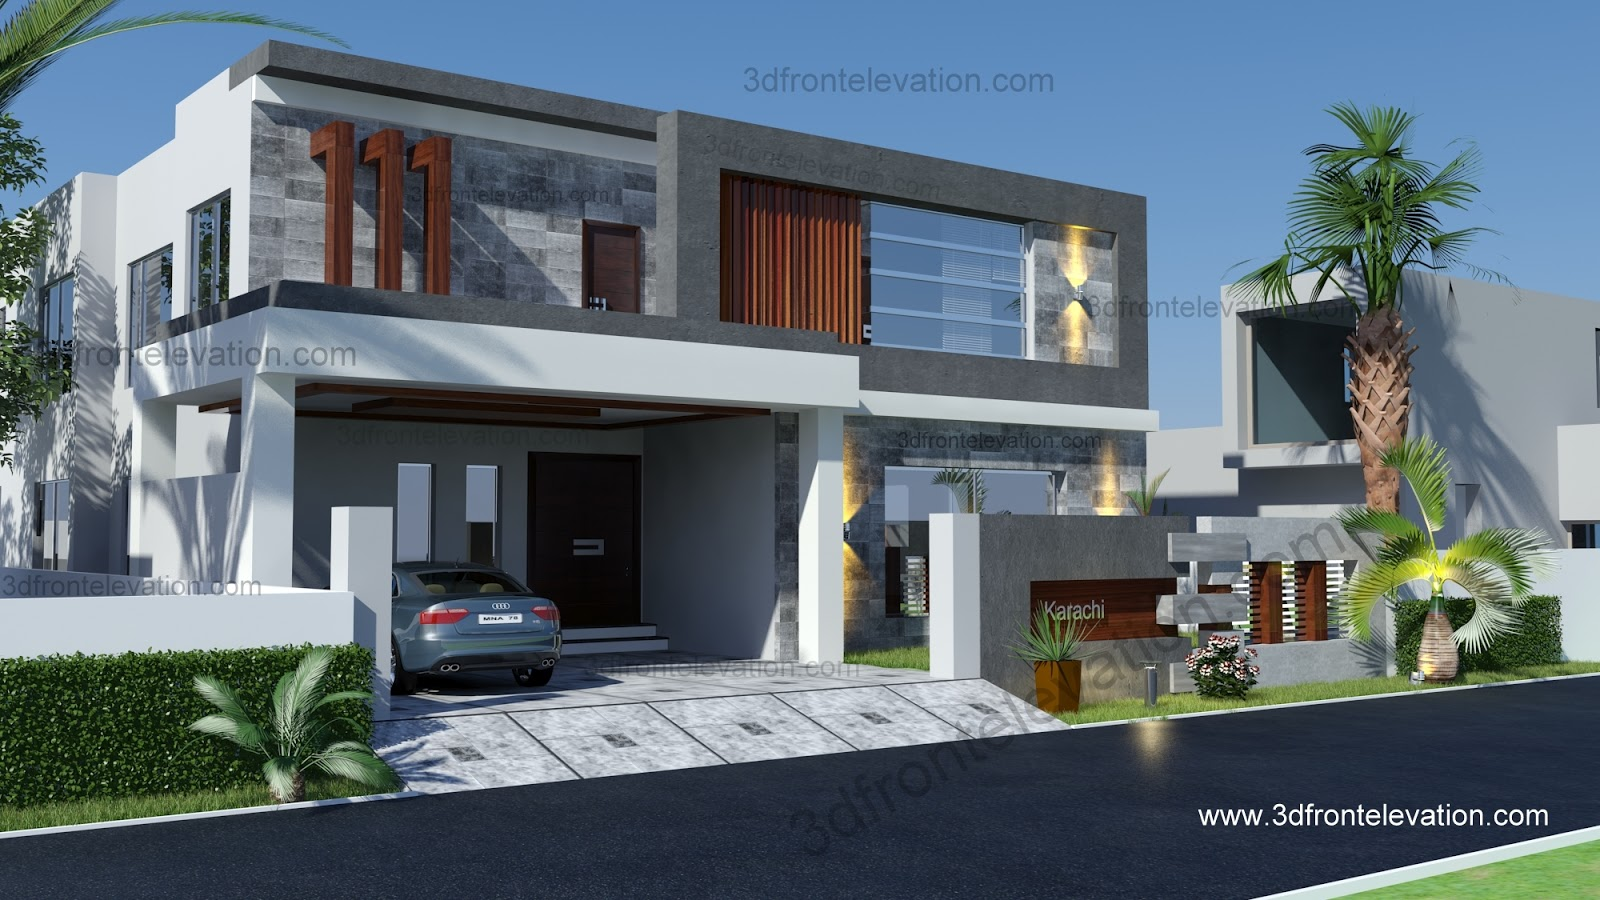 House design karachi - Karachi House For Sale Karachi House Design